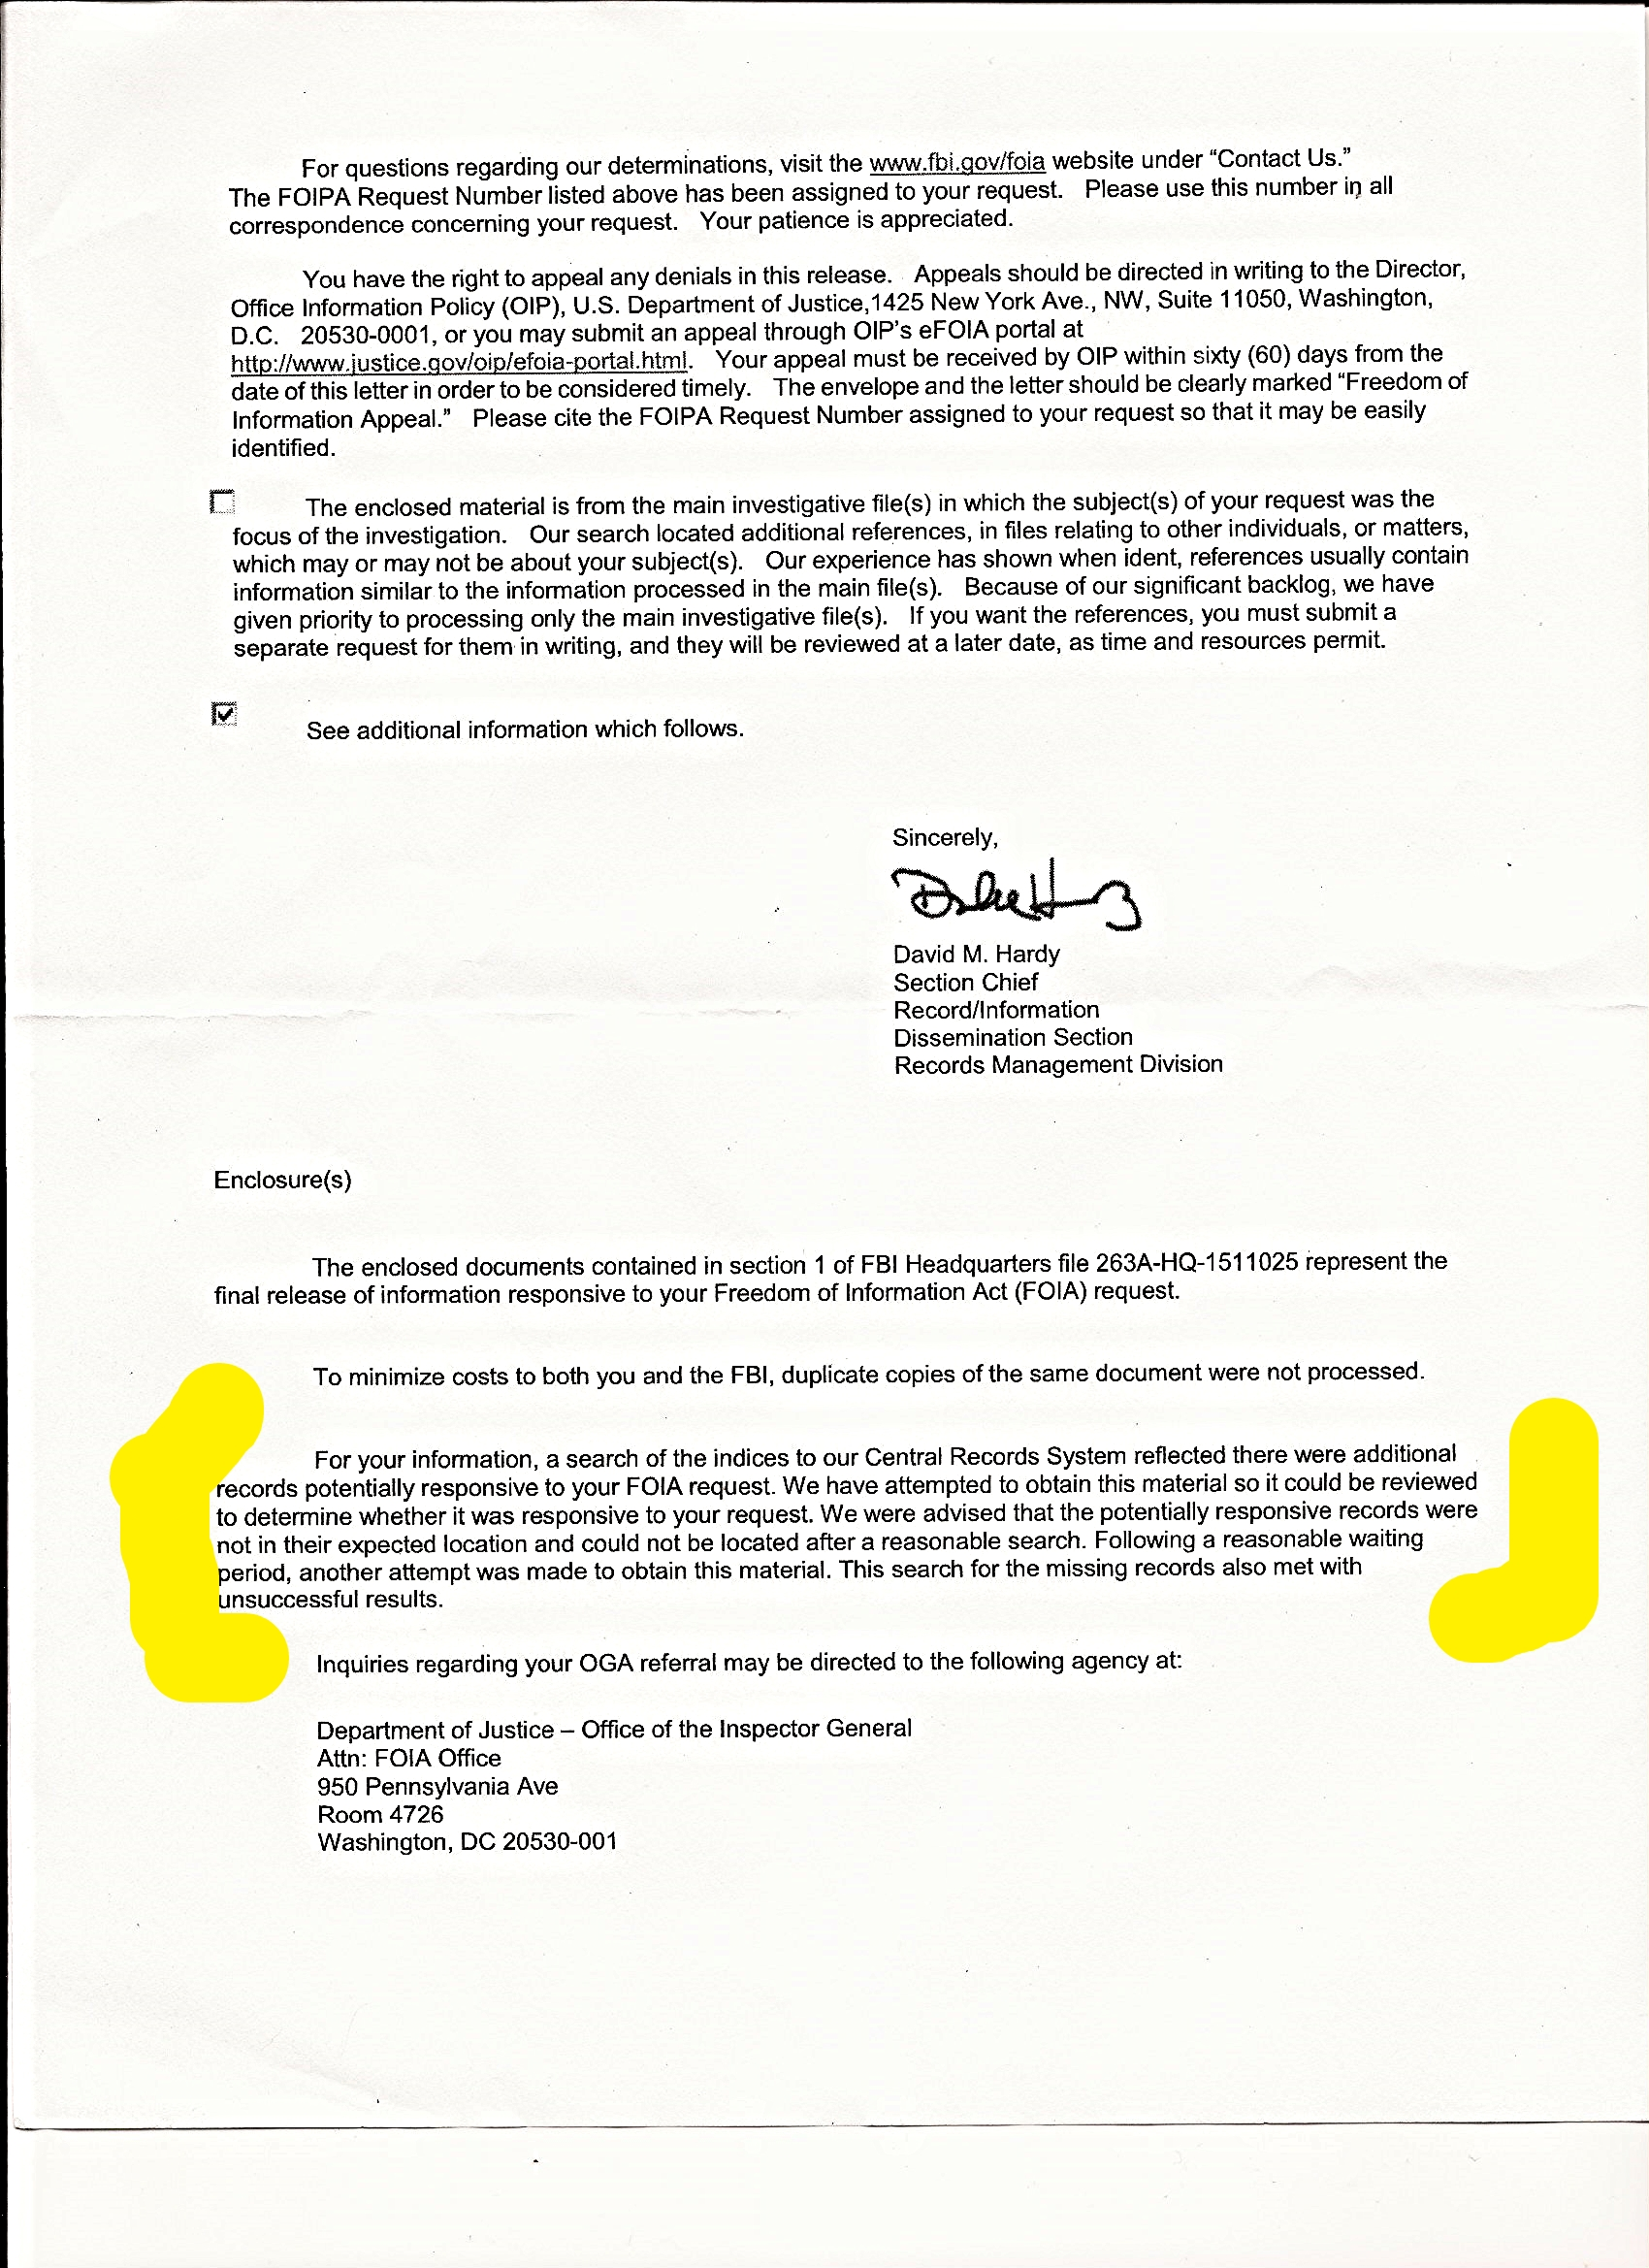 FBI FOIA cover letter to the Underground (note last paragraph re missing records).